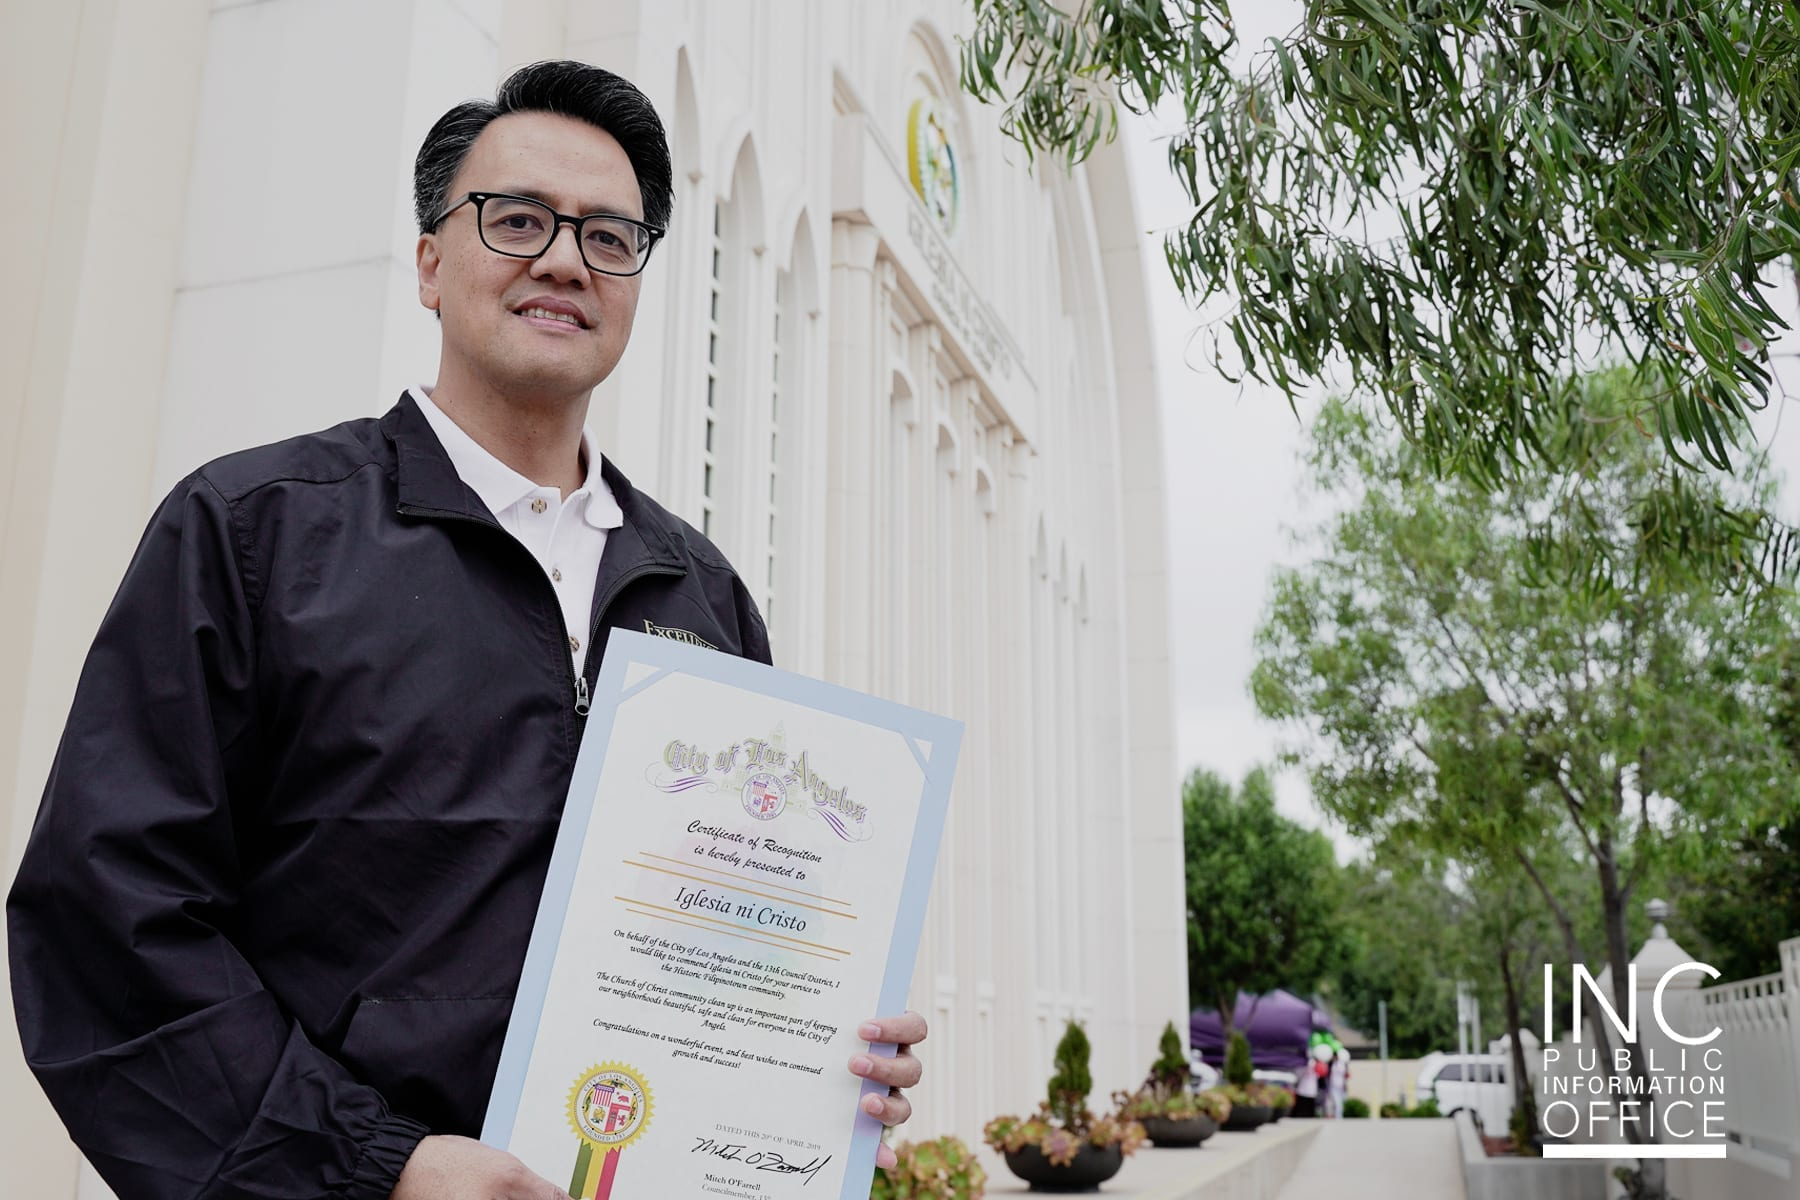 man smiling at camera with certificate in front of house of worship chapel